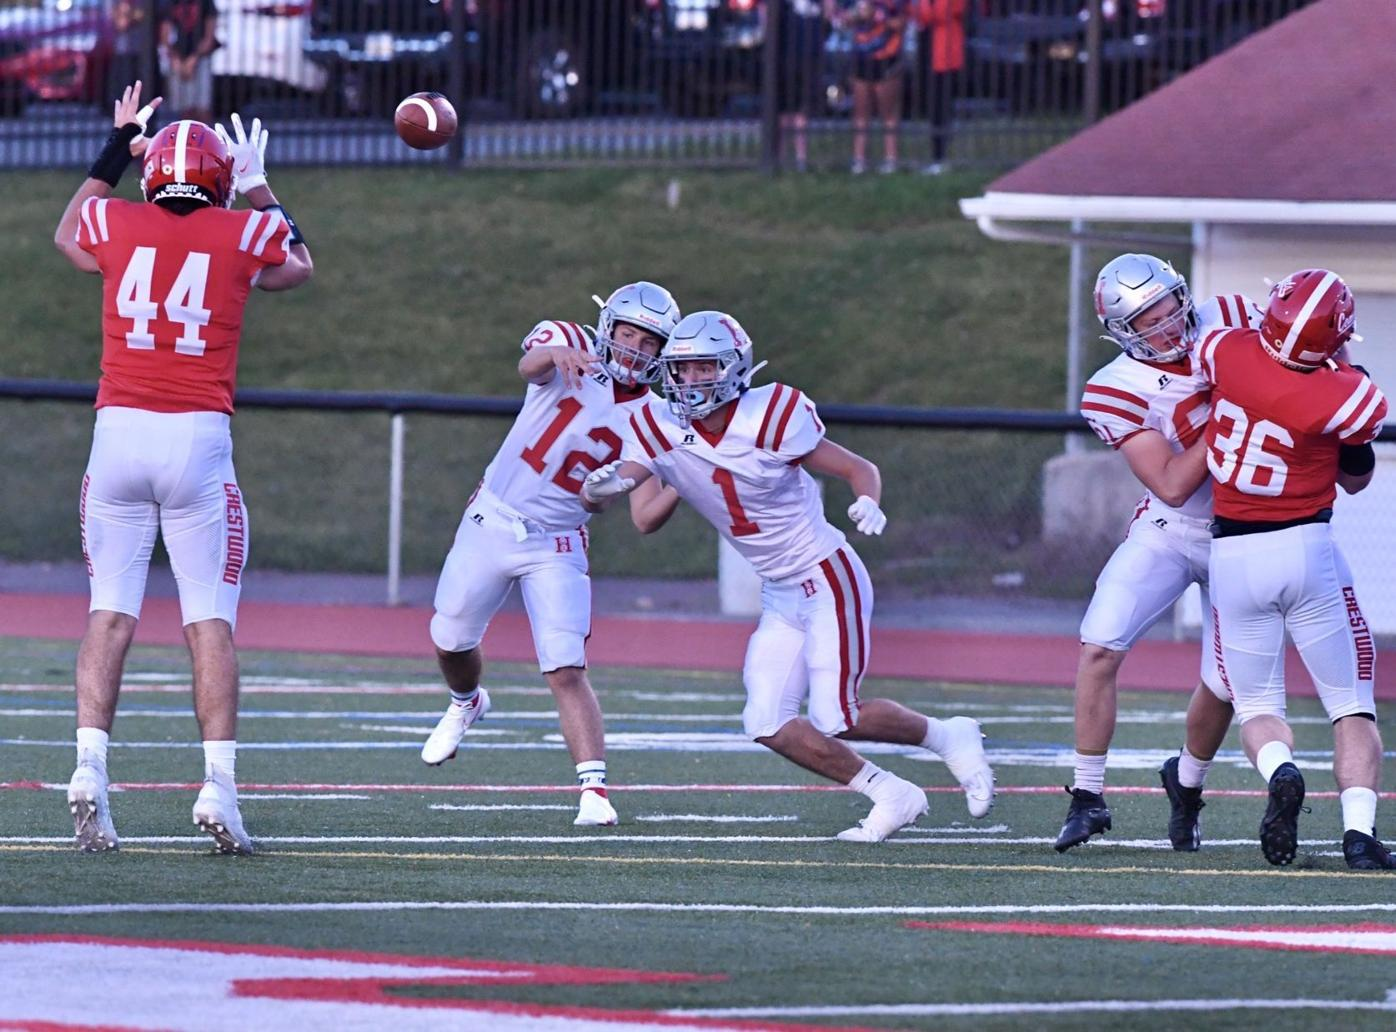 Cougars looking to build on momentum